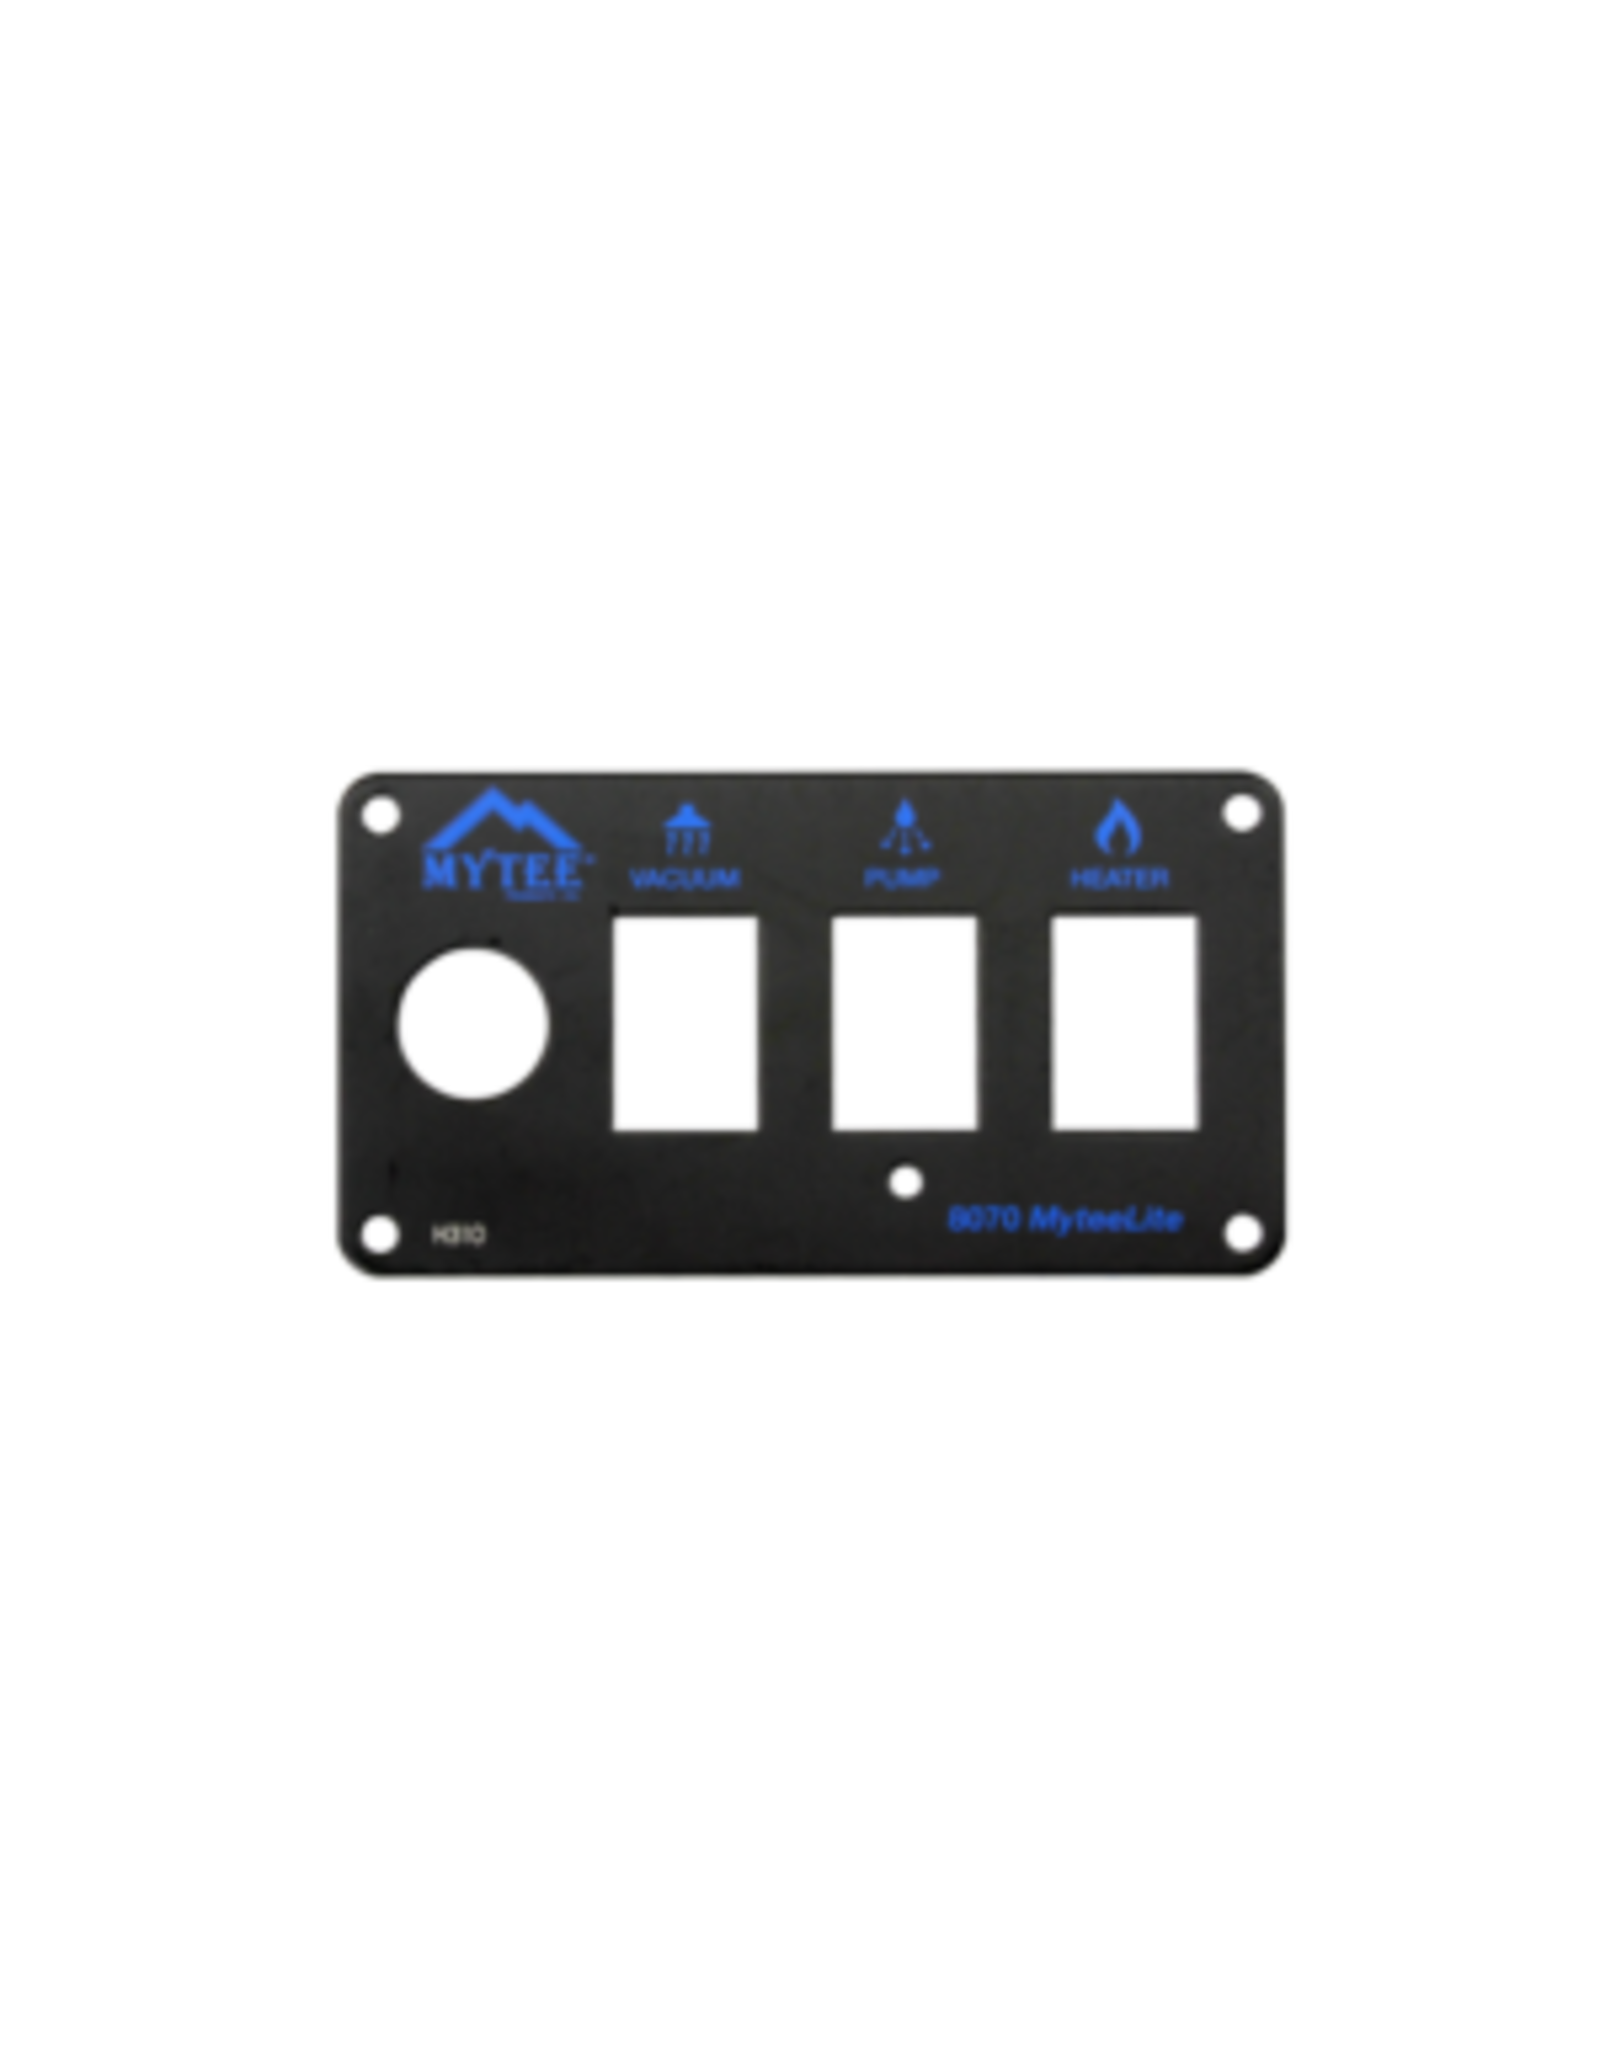 Switch plate mytee